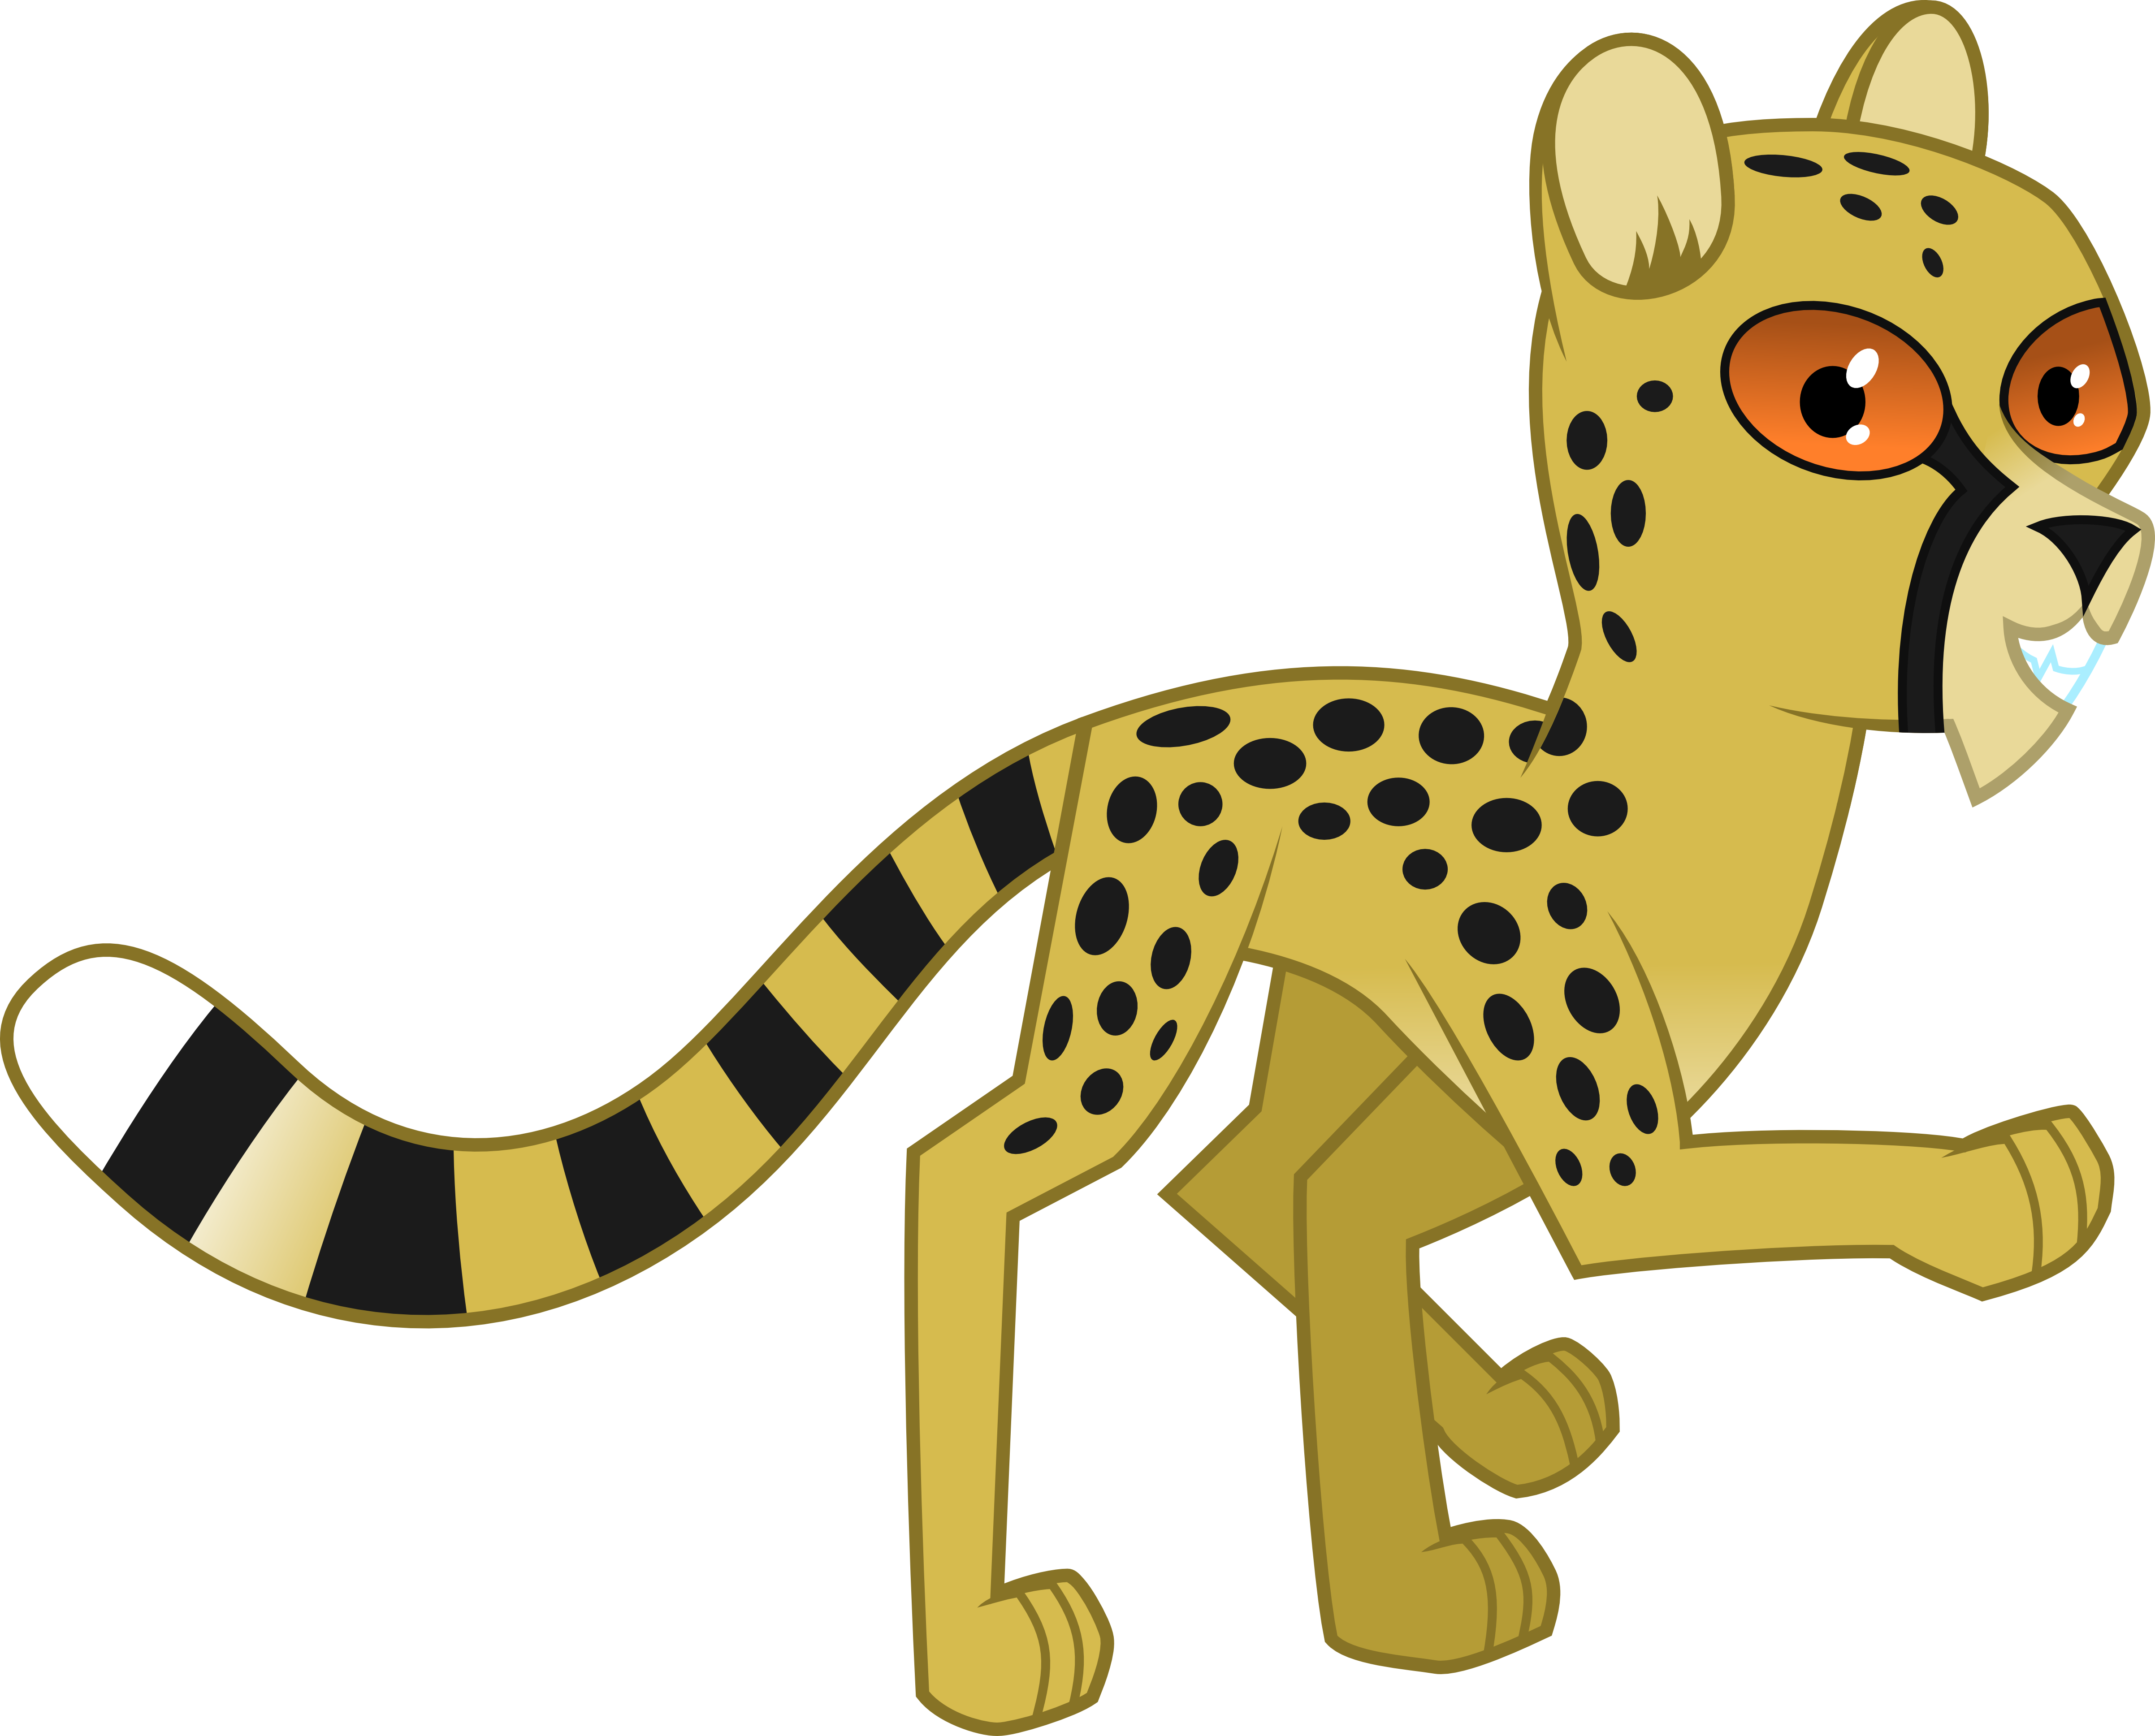 Cheetah book clipart stock Cheetah Running Clipart at GetDrawings.com | Free for personal use ... stock